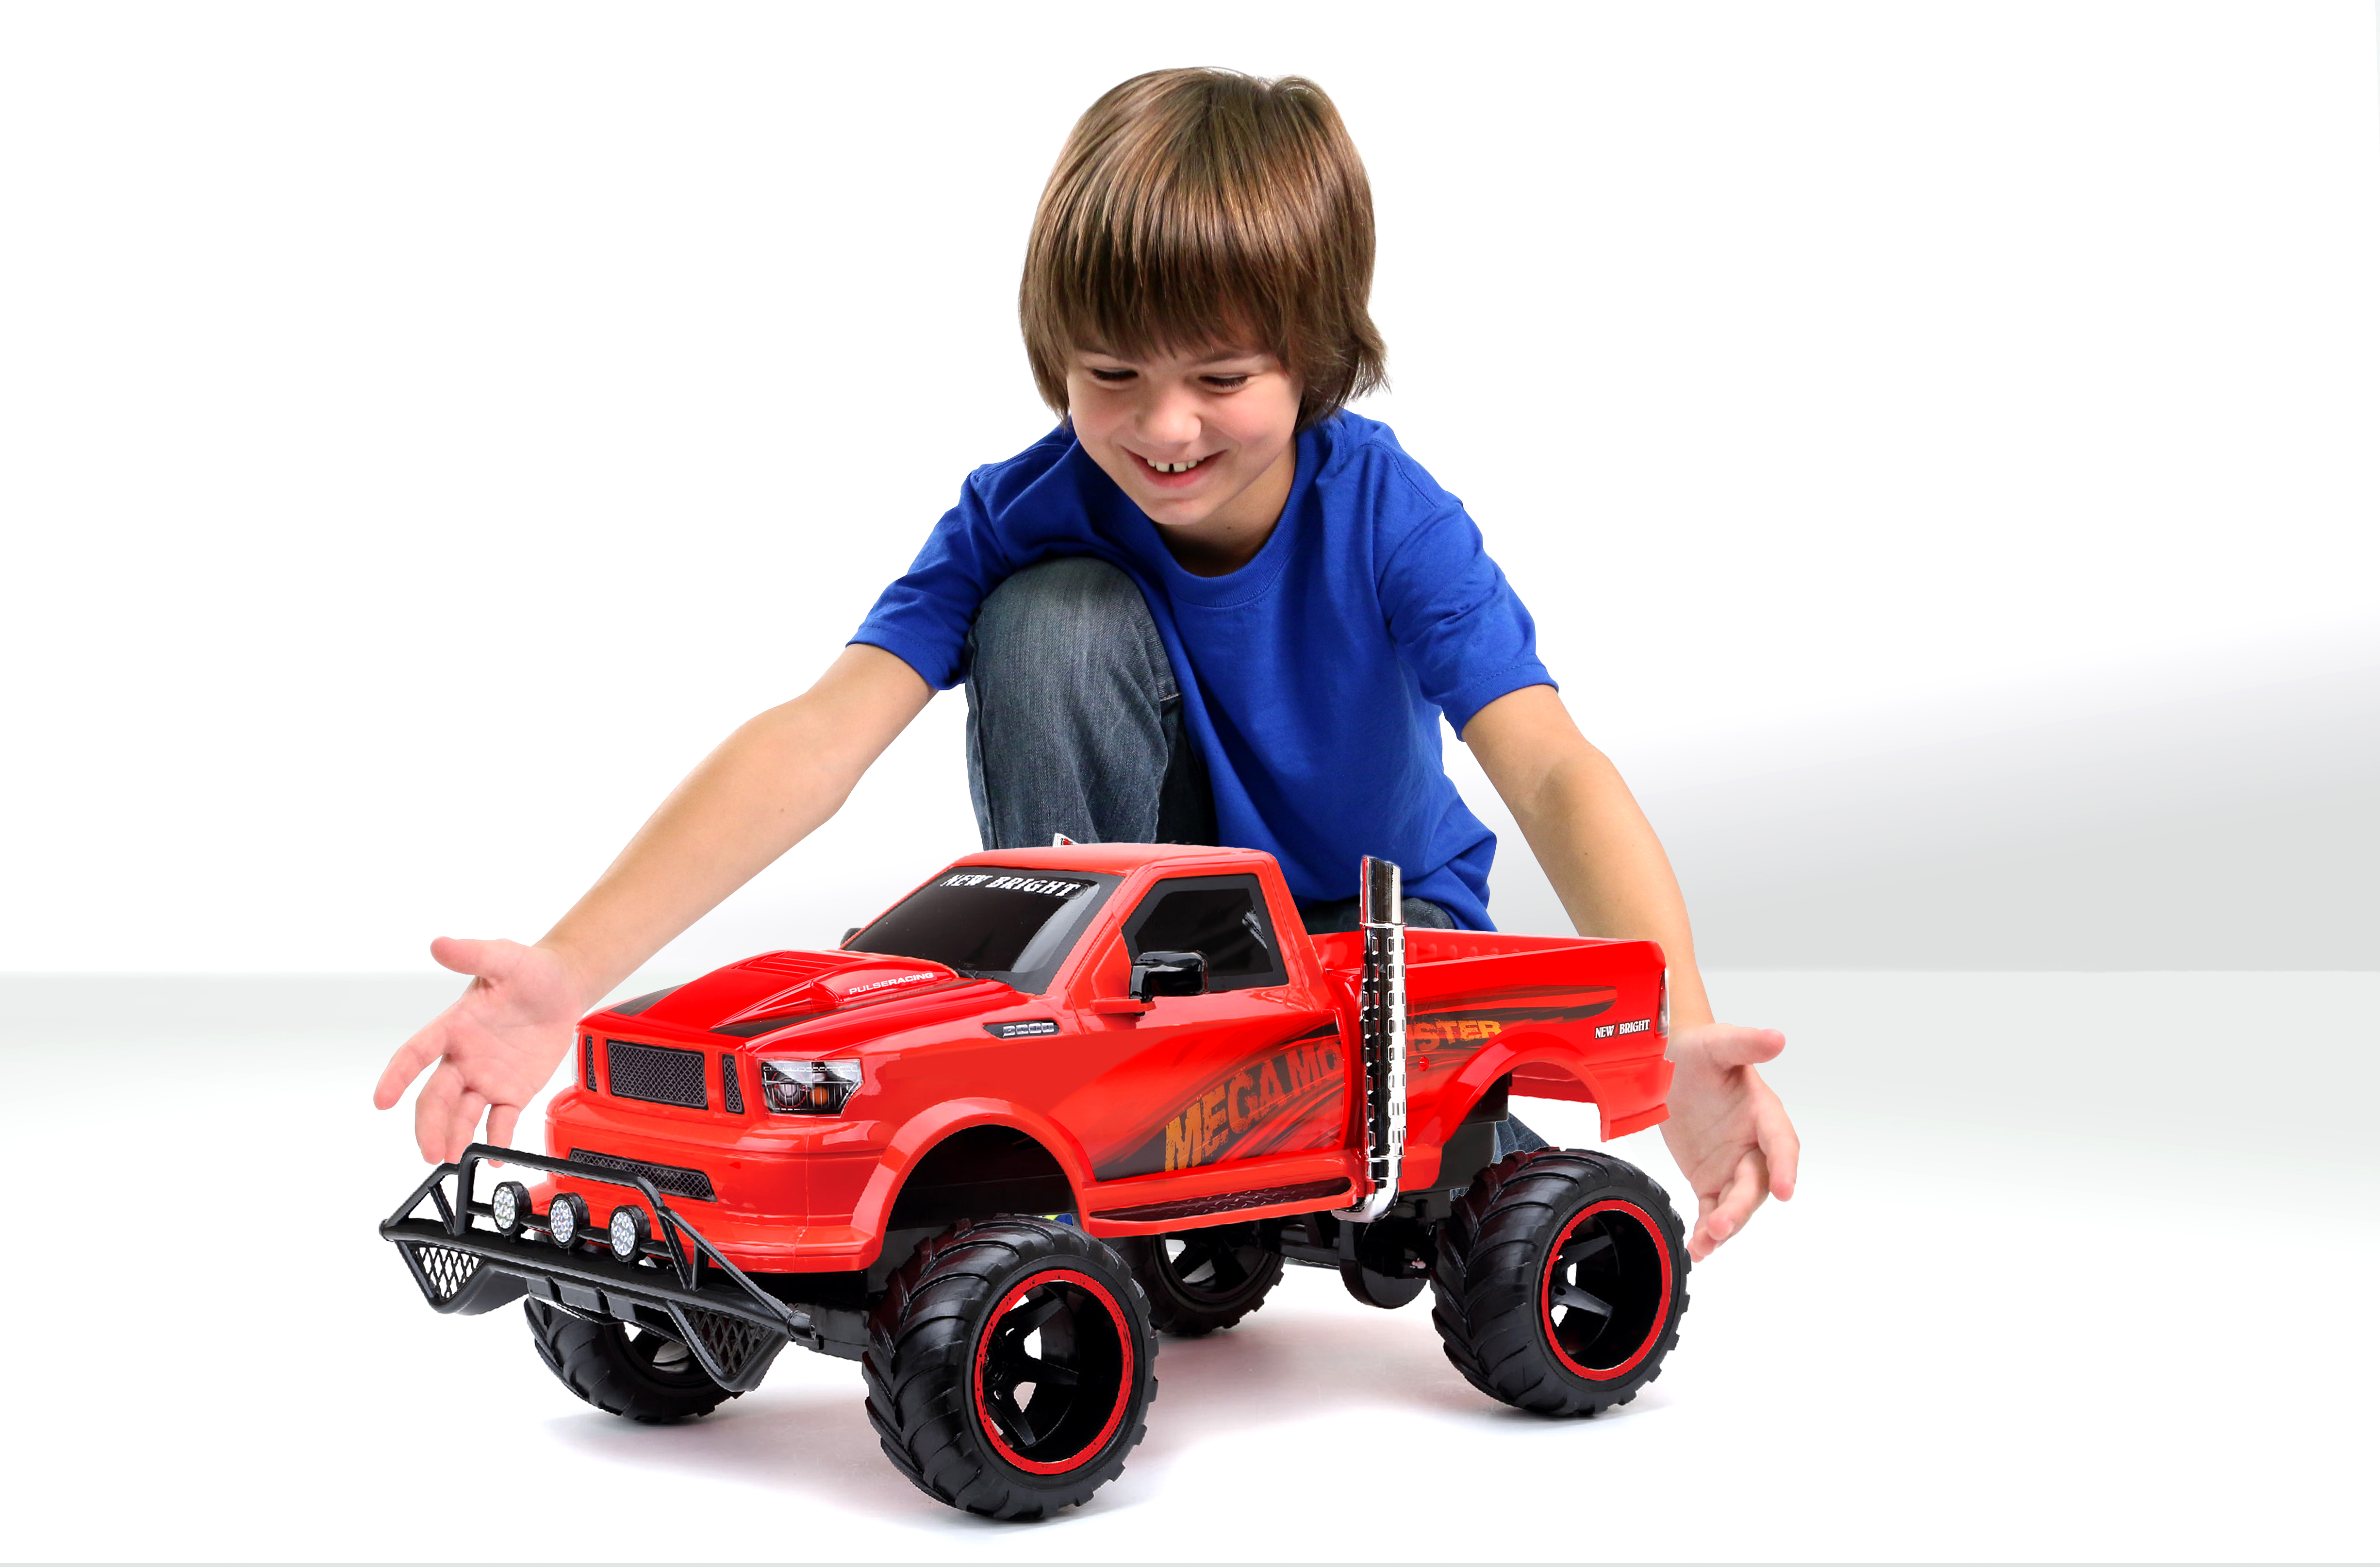 New Bright 1:6 Scale Radio Control Mega Monster Truck by New Bright